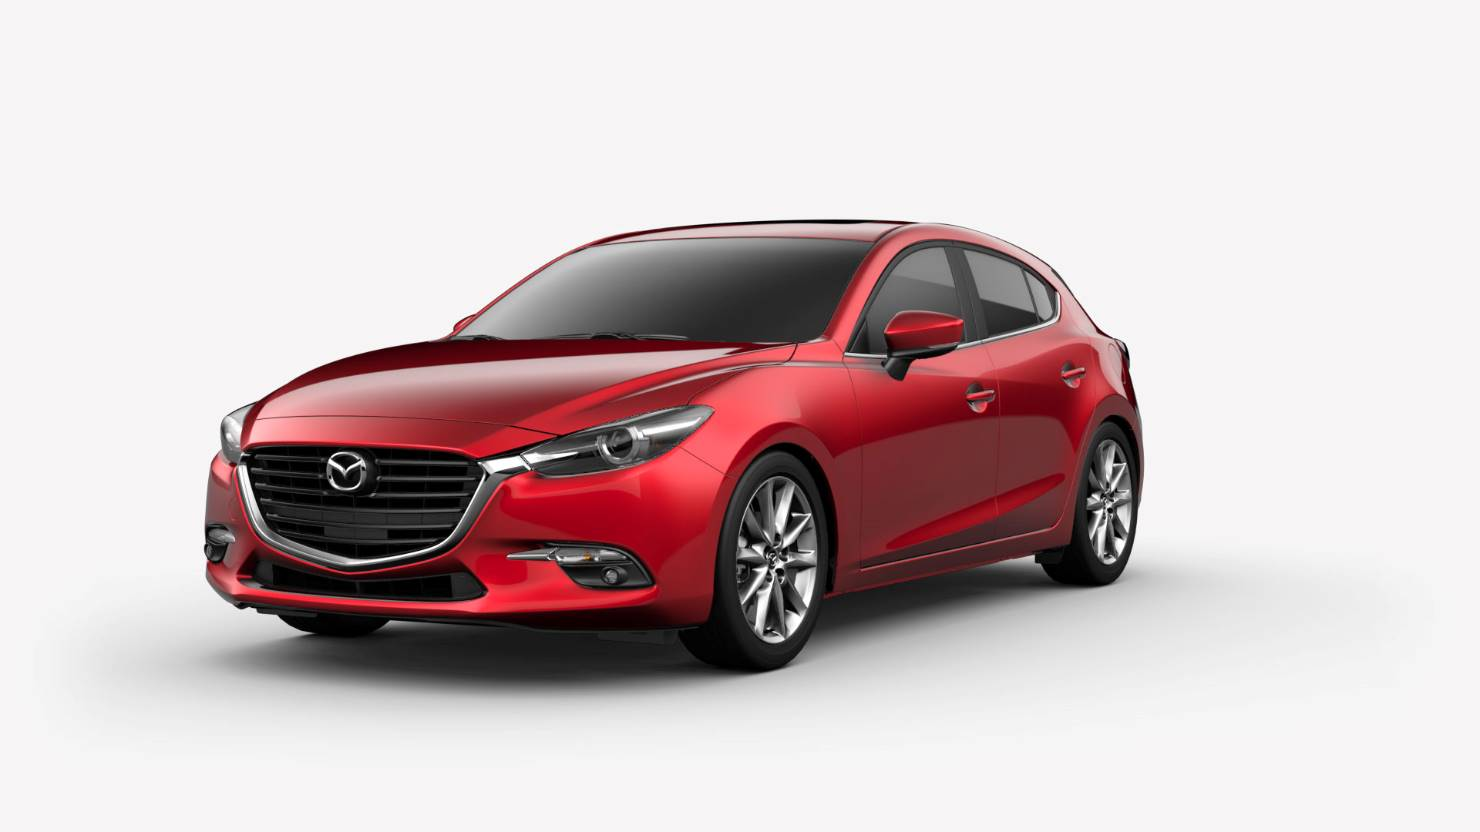 2018 Mazda3 Hatchback, Soul Red